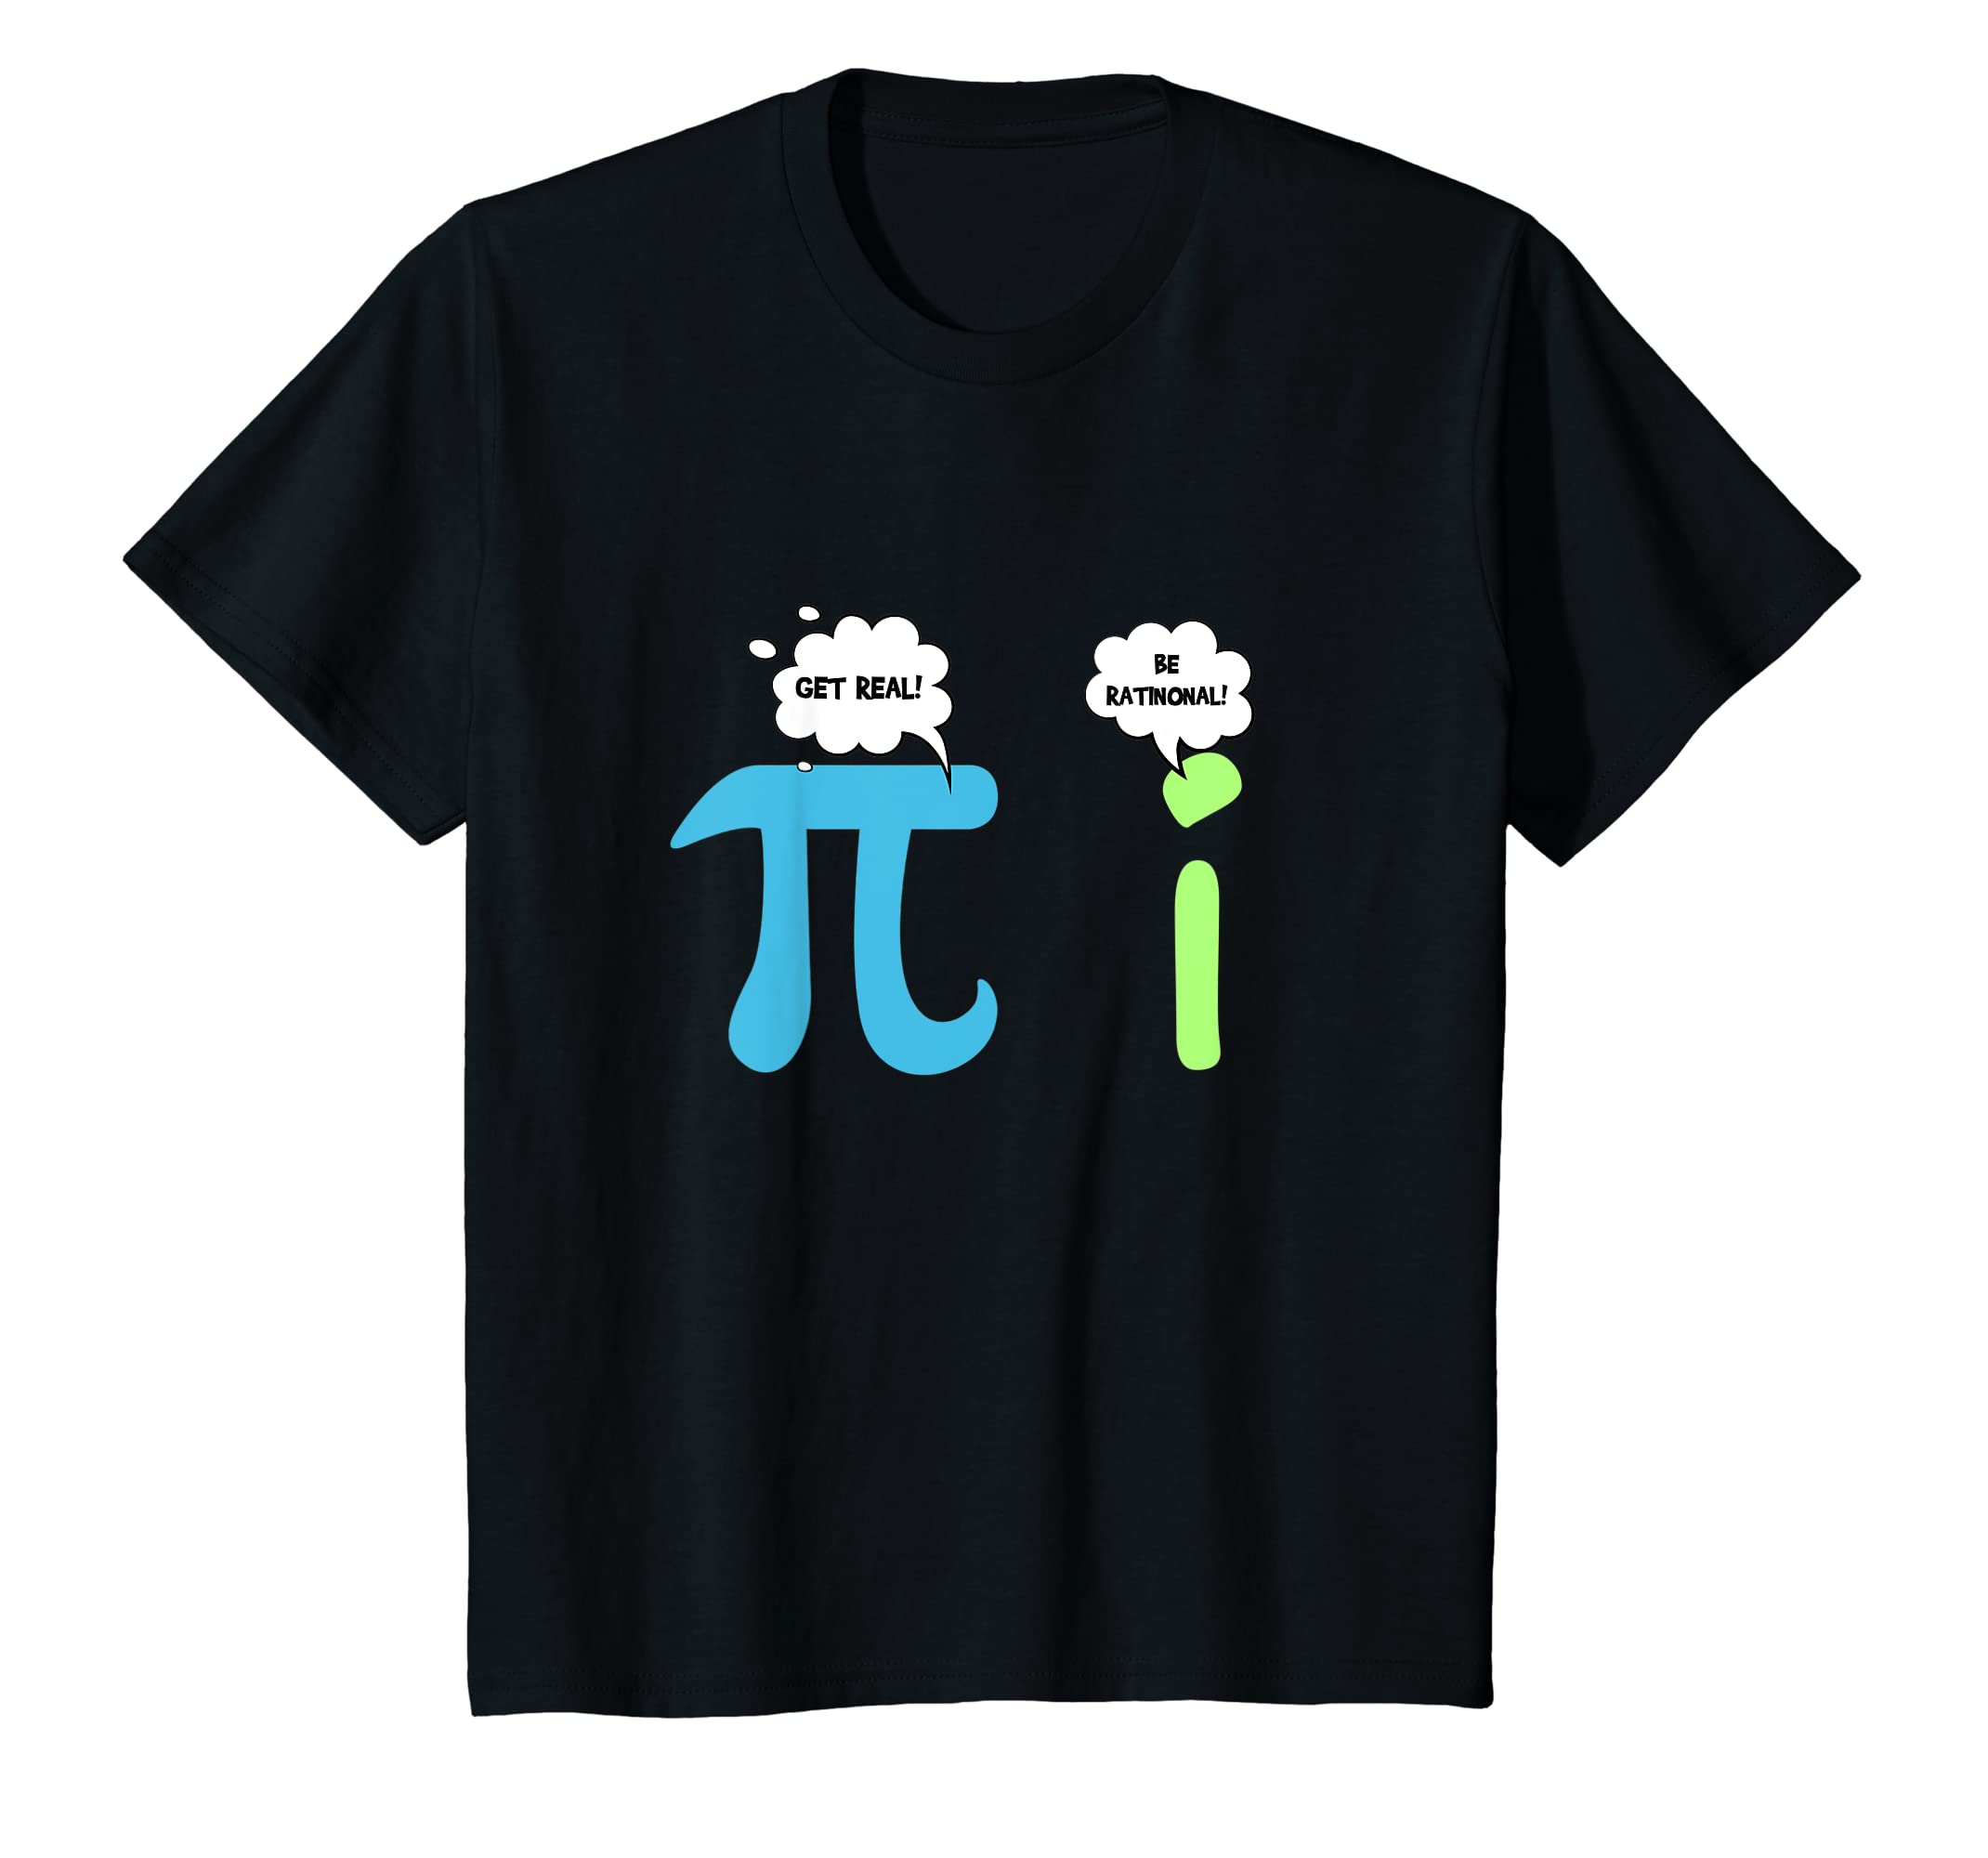 86b02fc35 Amazon.com: Get Real Be Rational Pi Funny Math Geek Sarcastic Adult Tee:  Clothing